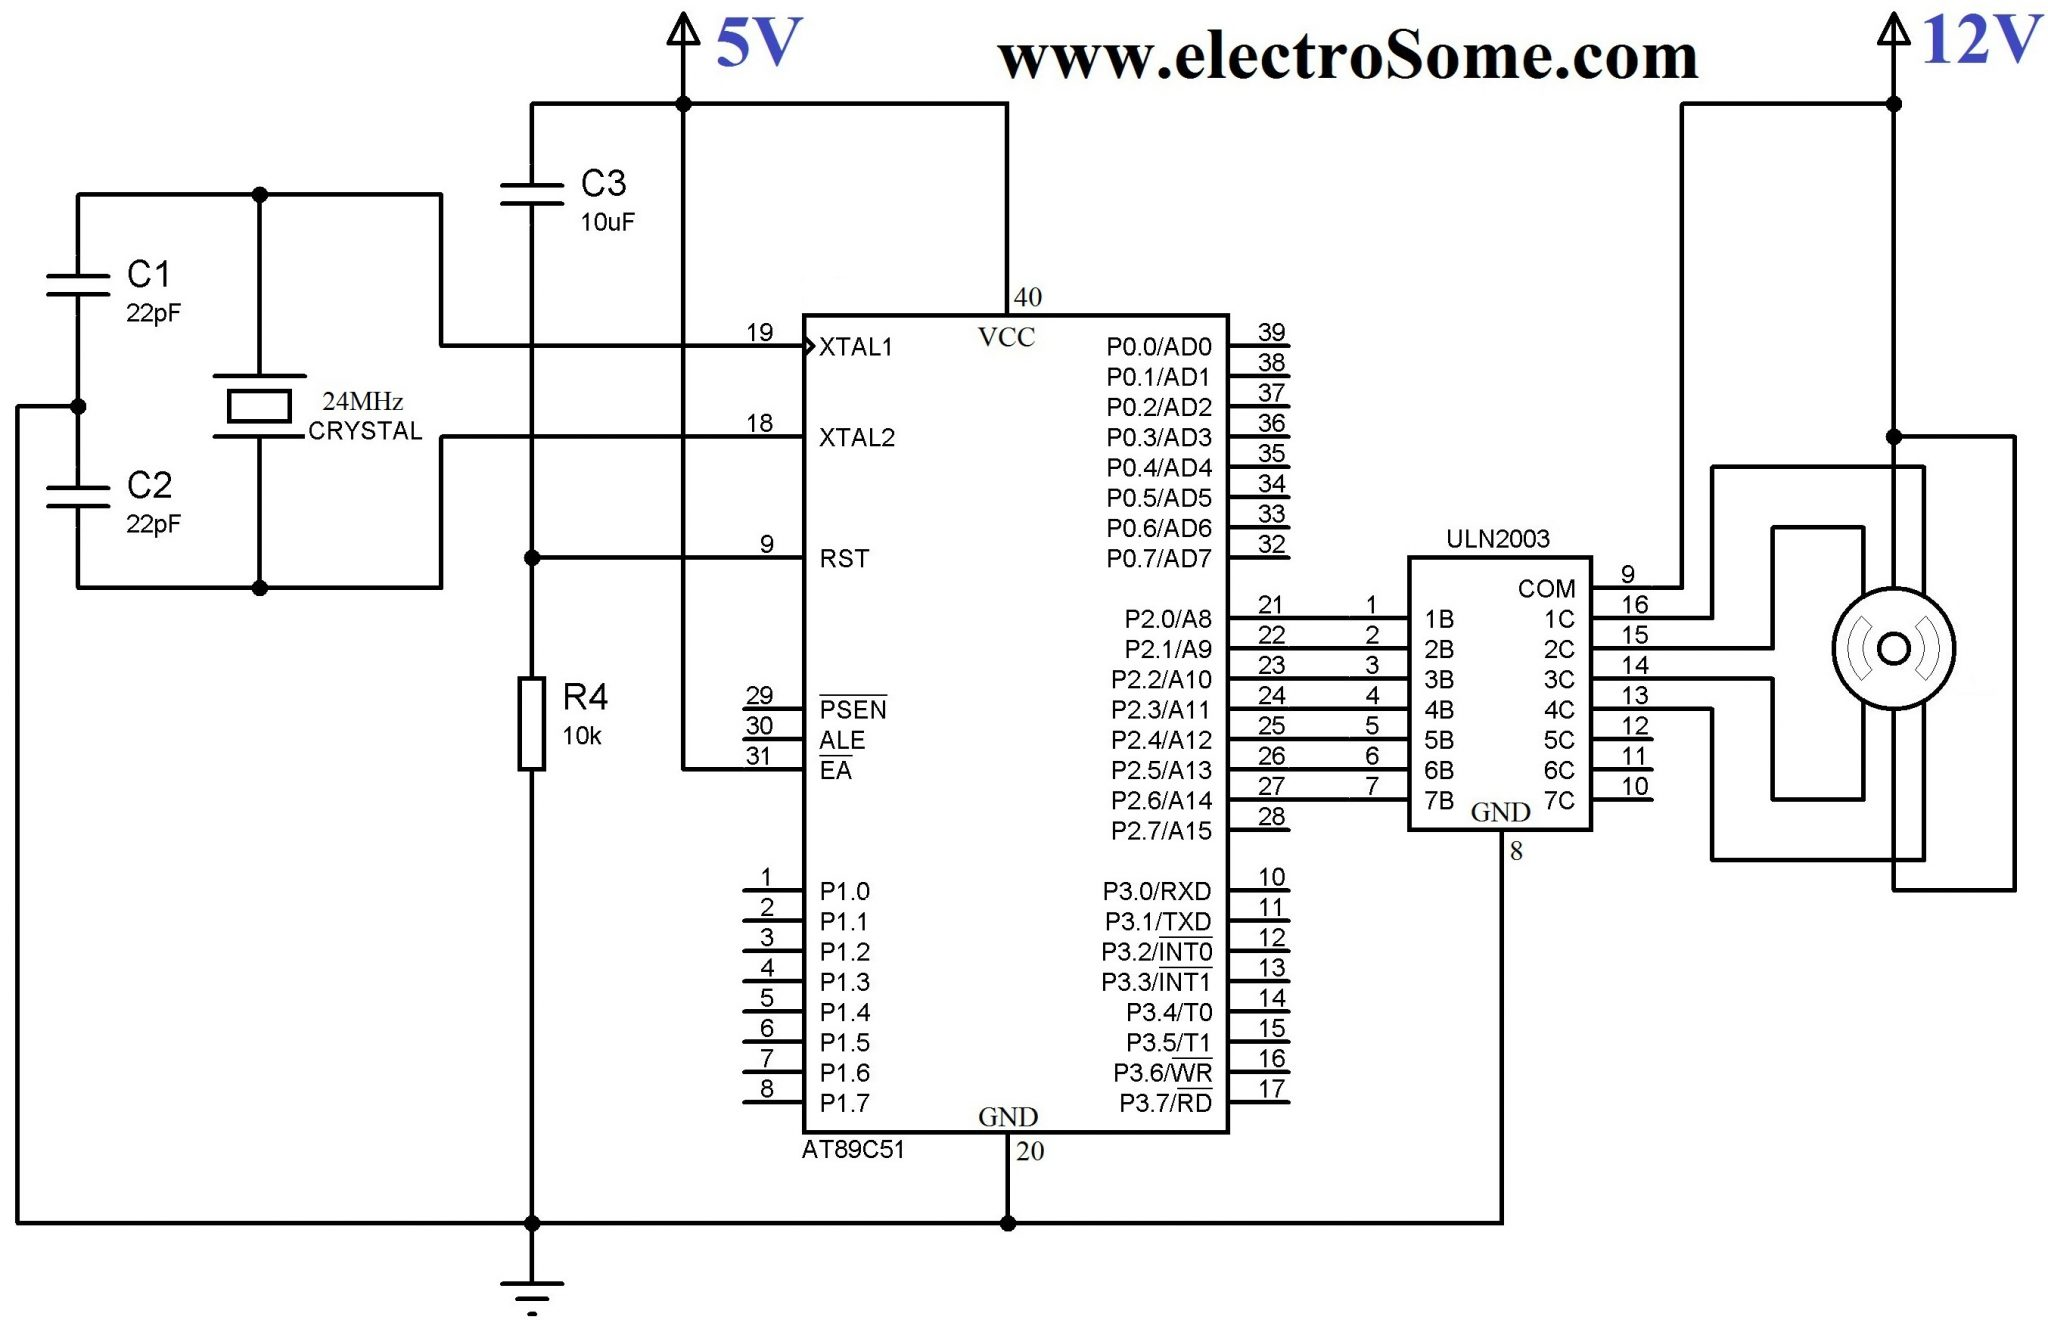 Dishwasher Circuit Diagram Not Lossing Wiring On Motor Interfacing Stepper With 8051 Using Keil C At89c51 Siemens Bosch